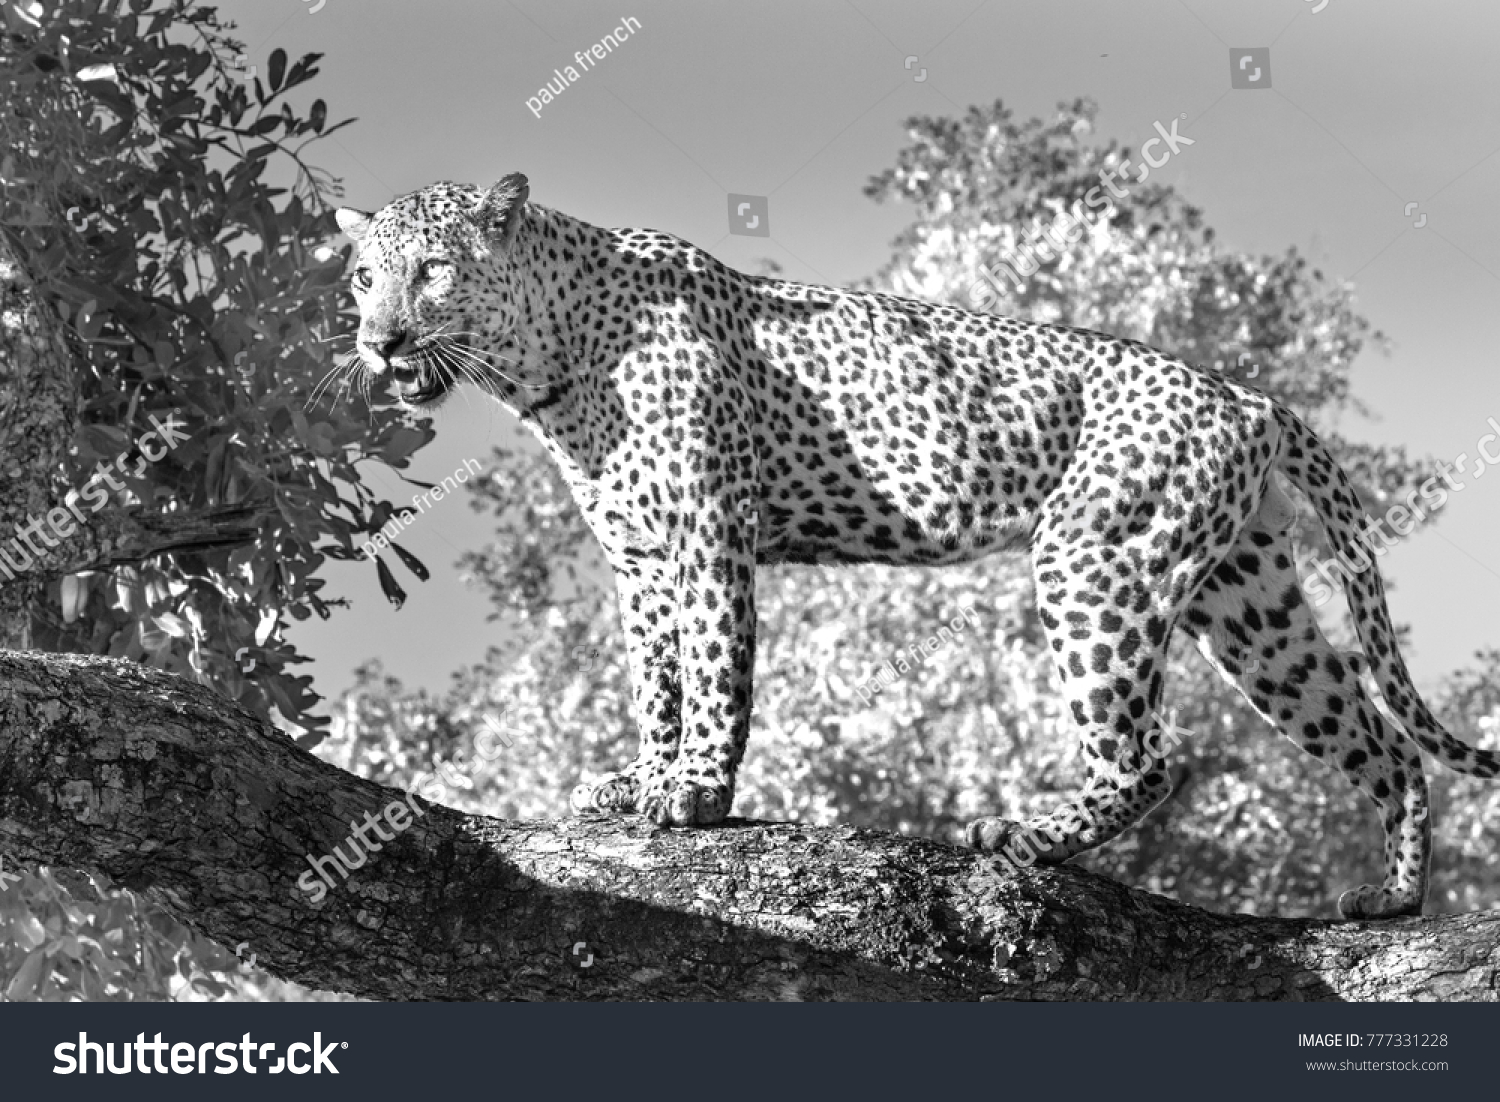 African leopard in black & white standing on a large tree branch with a natural tree background in south luangwa national park, zambia